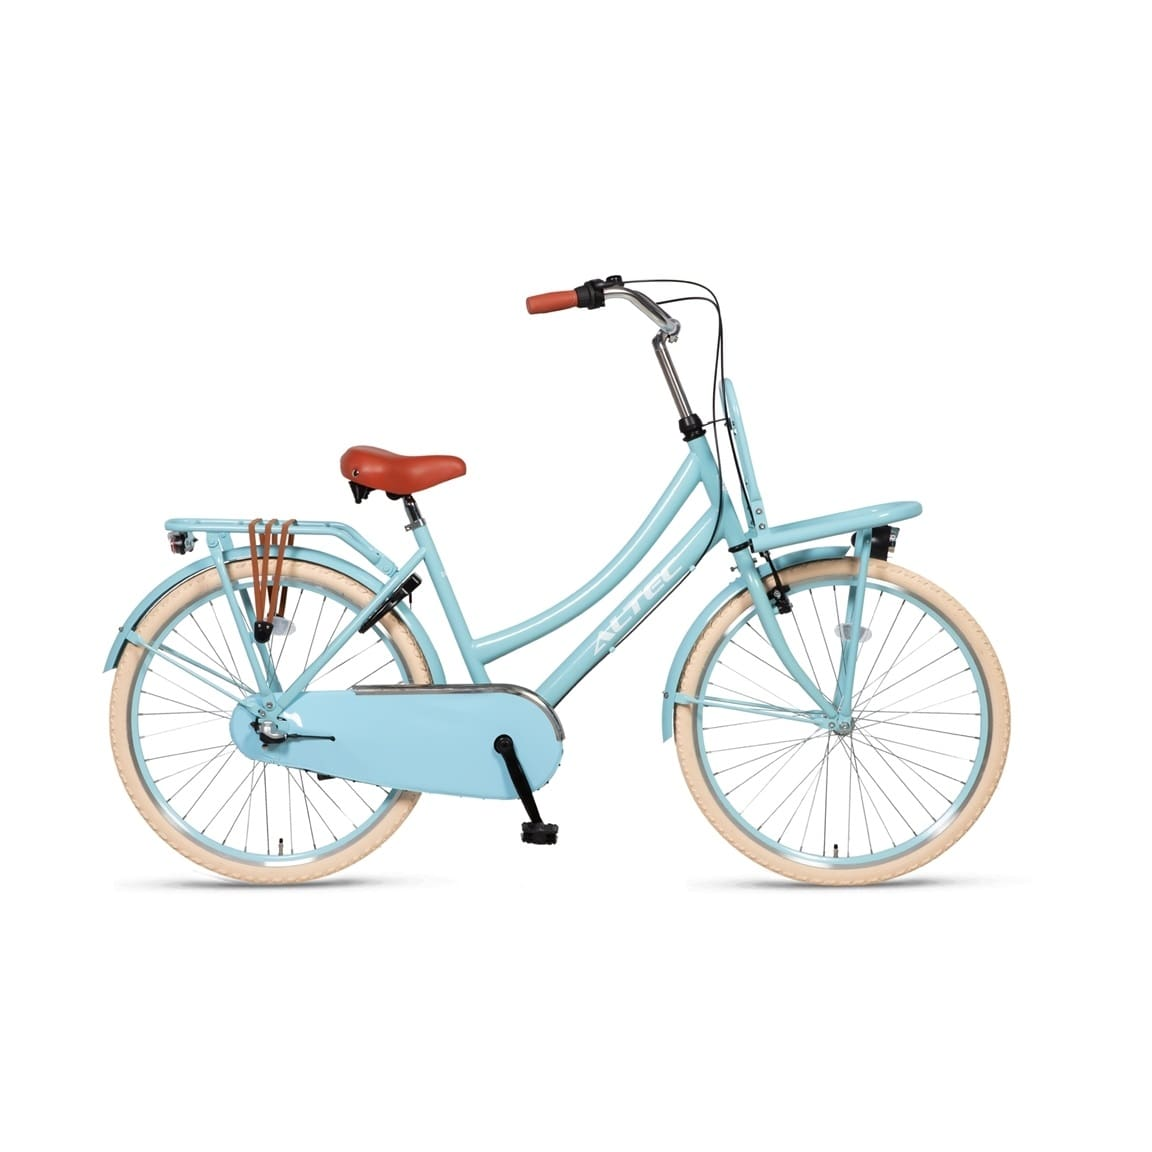 Altec-Dutch-26inch-Transportfiets-Sky-Blue-Nieuw-2019-min